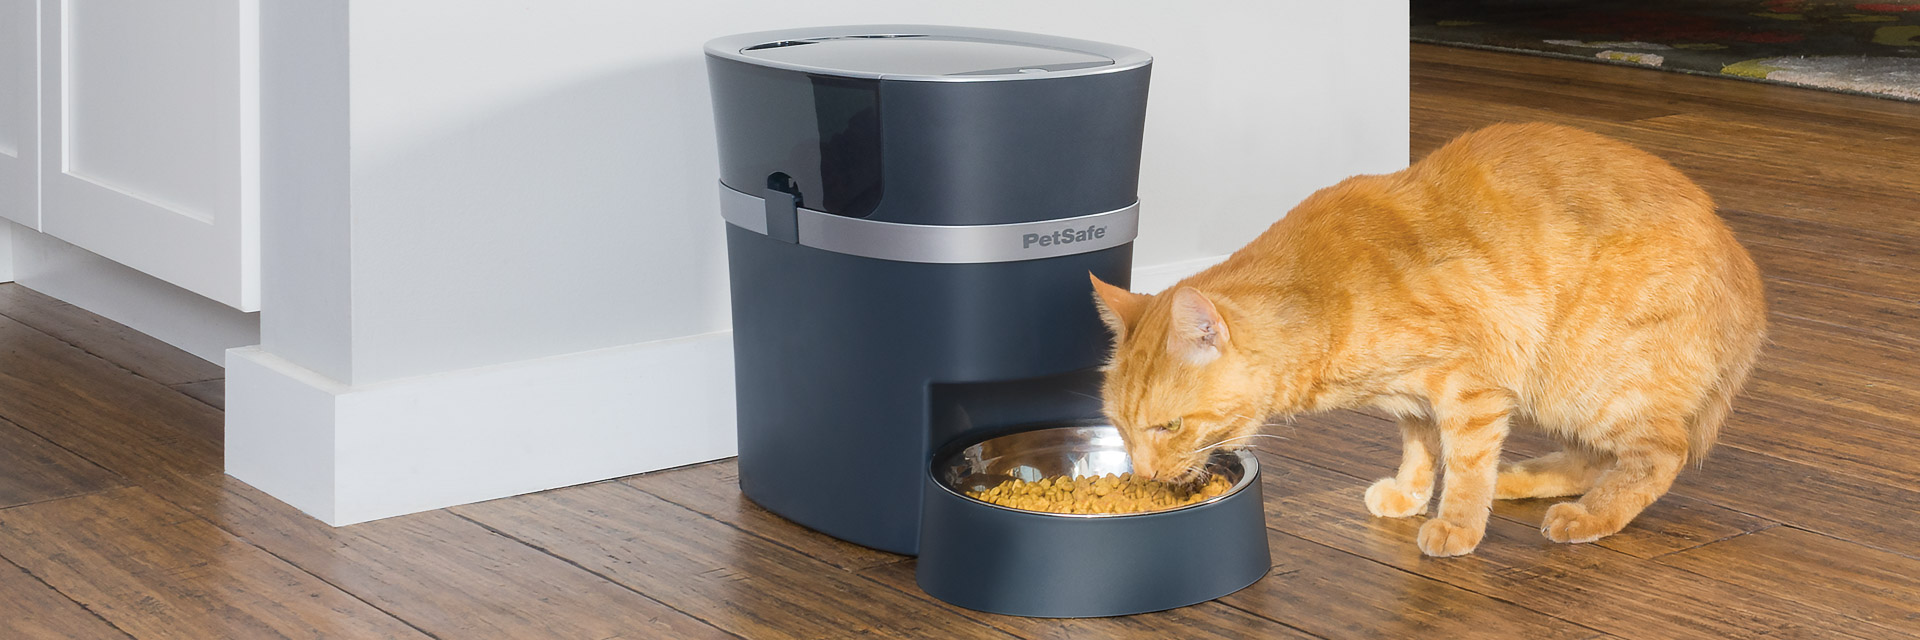 Dog eating from PetSafe feeder